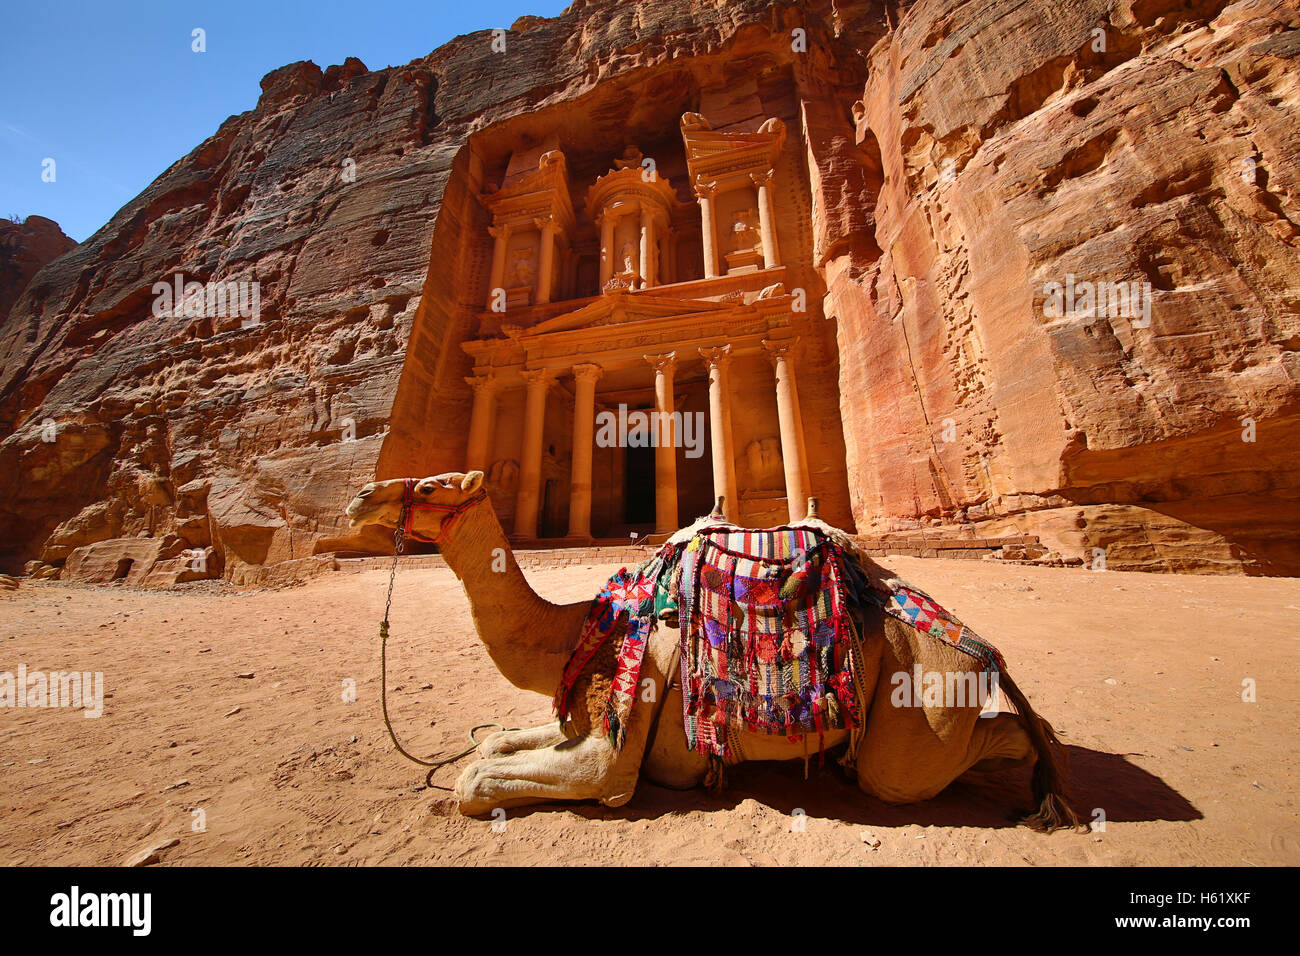 View of the Treasury, Al-Khazneh with camels, Petra, Jordan - Stock Image